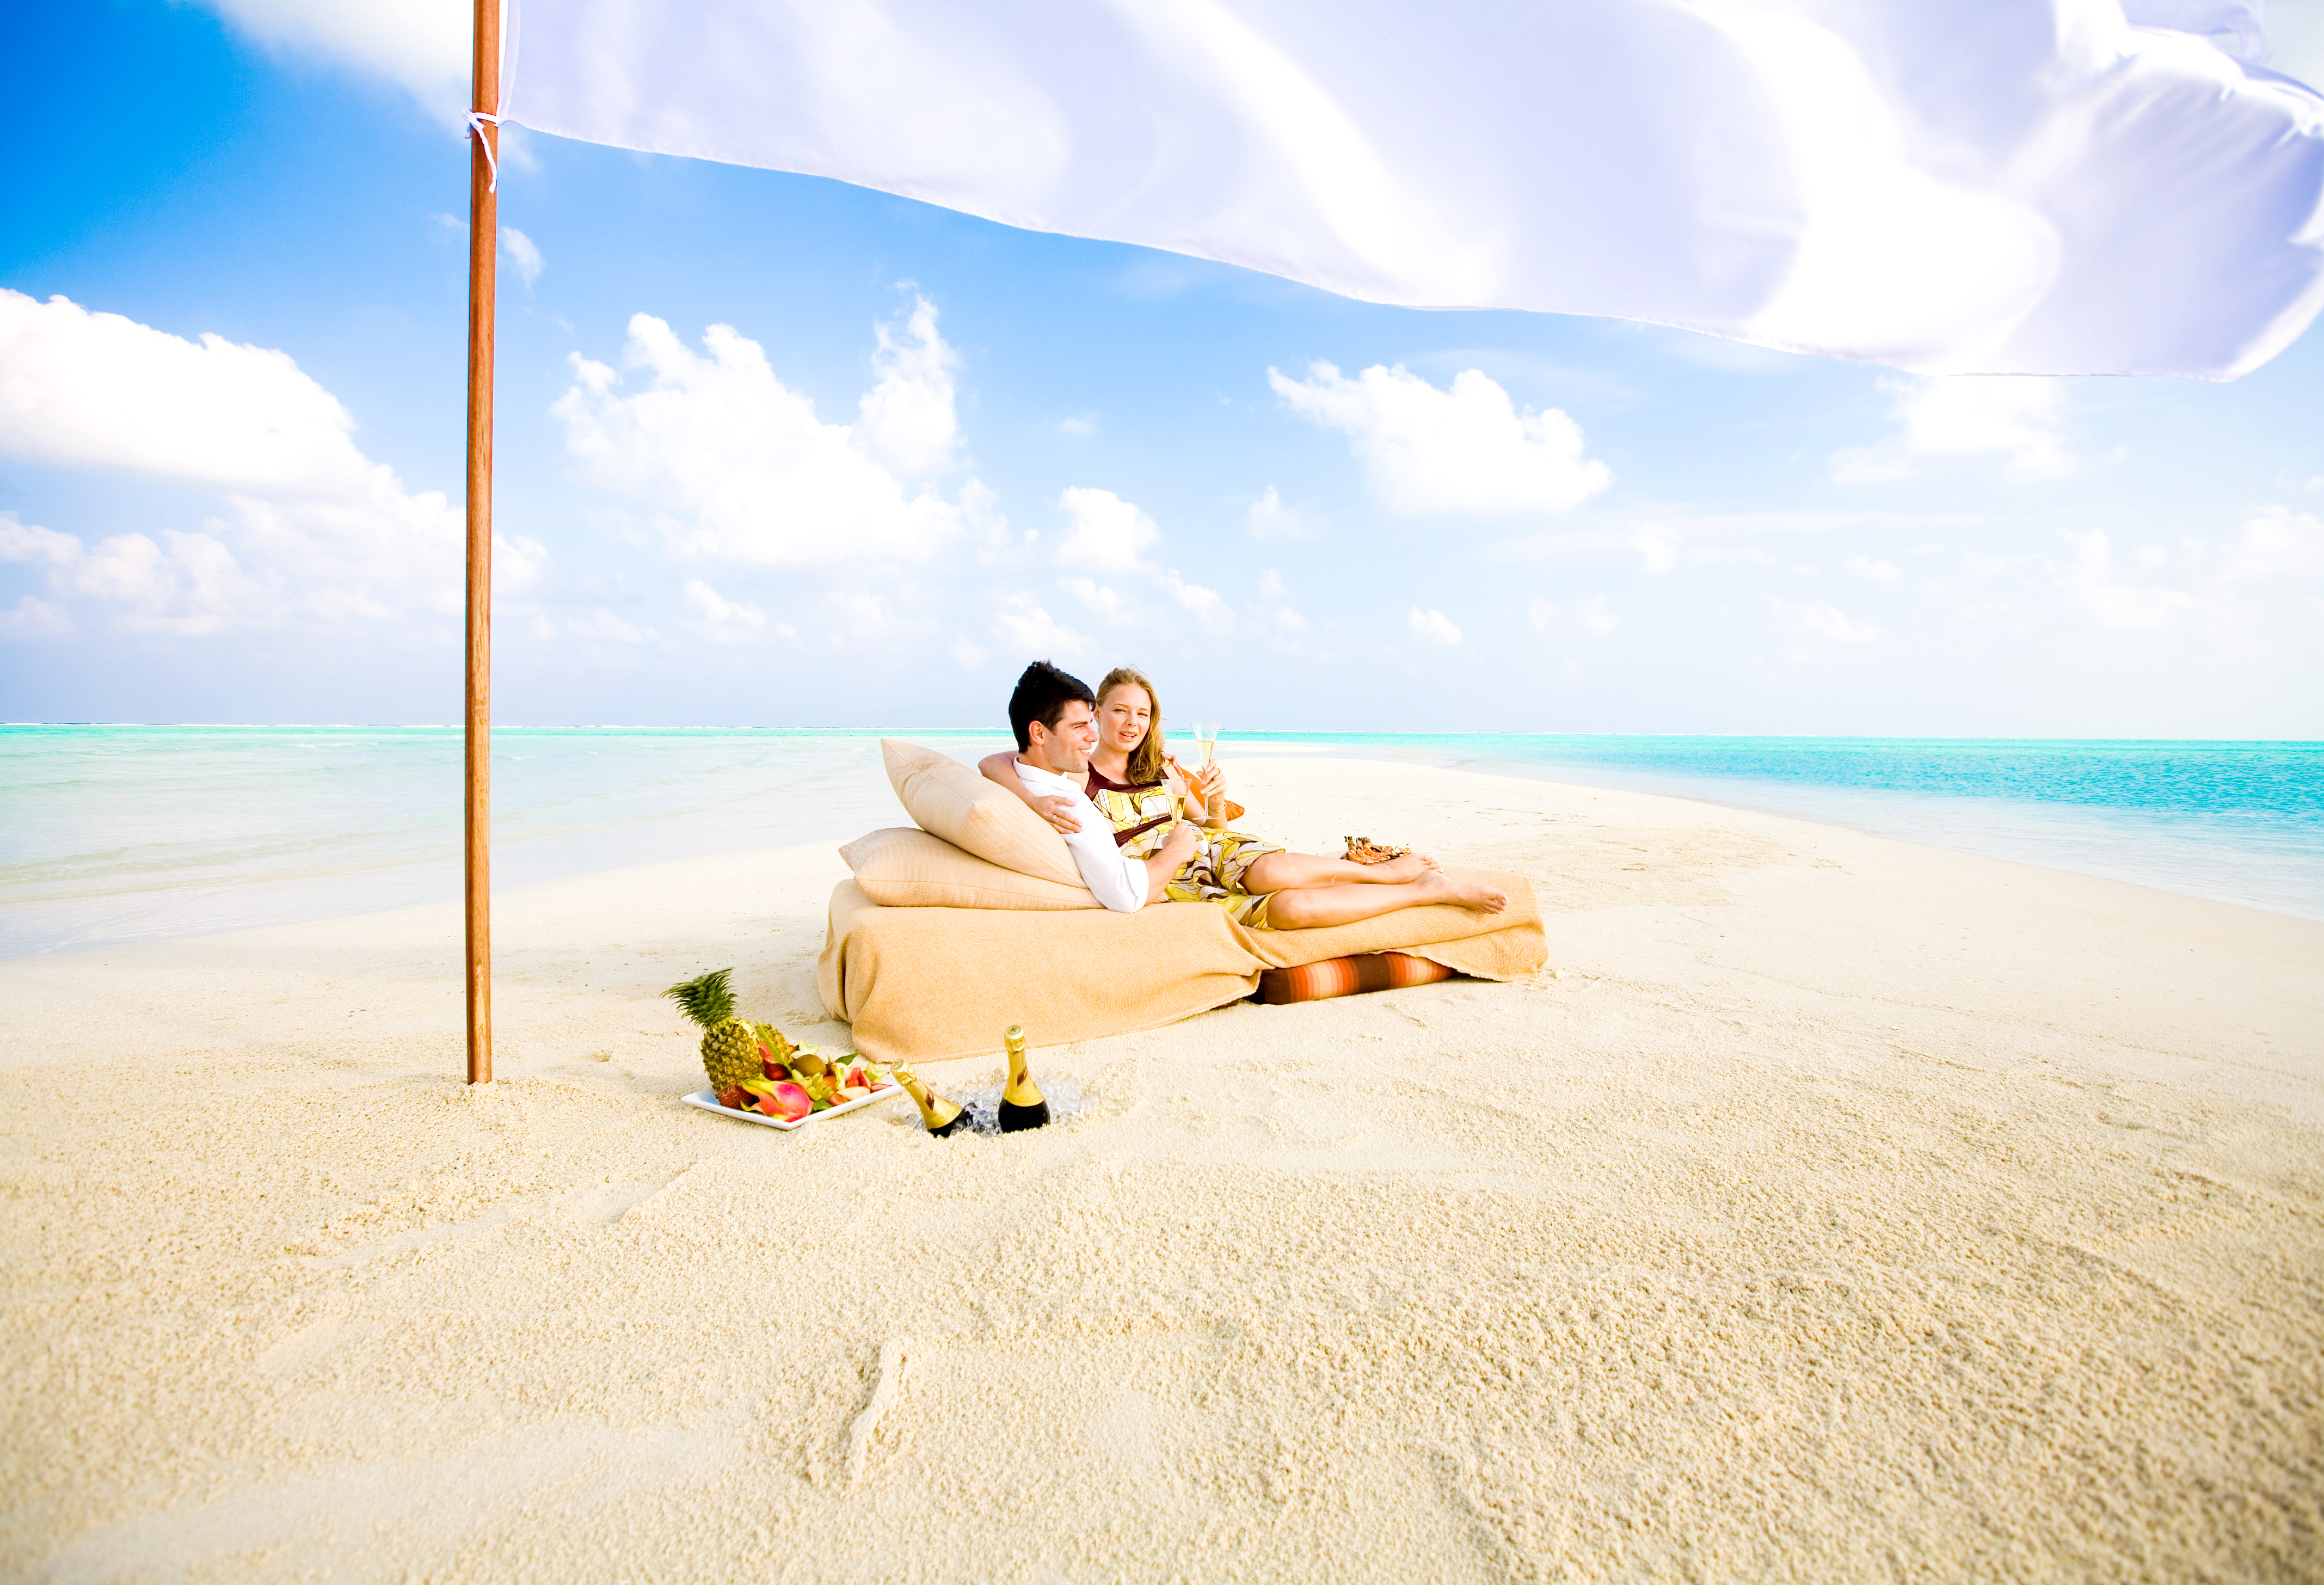 Best Romantic Hotels in the Caribbean TripAdvisor Travelers Choice Awards See the best hotels in the world as determined from ratings by travelers like you